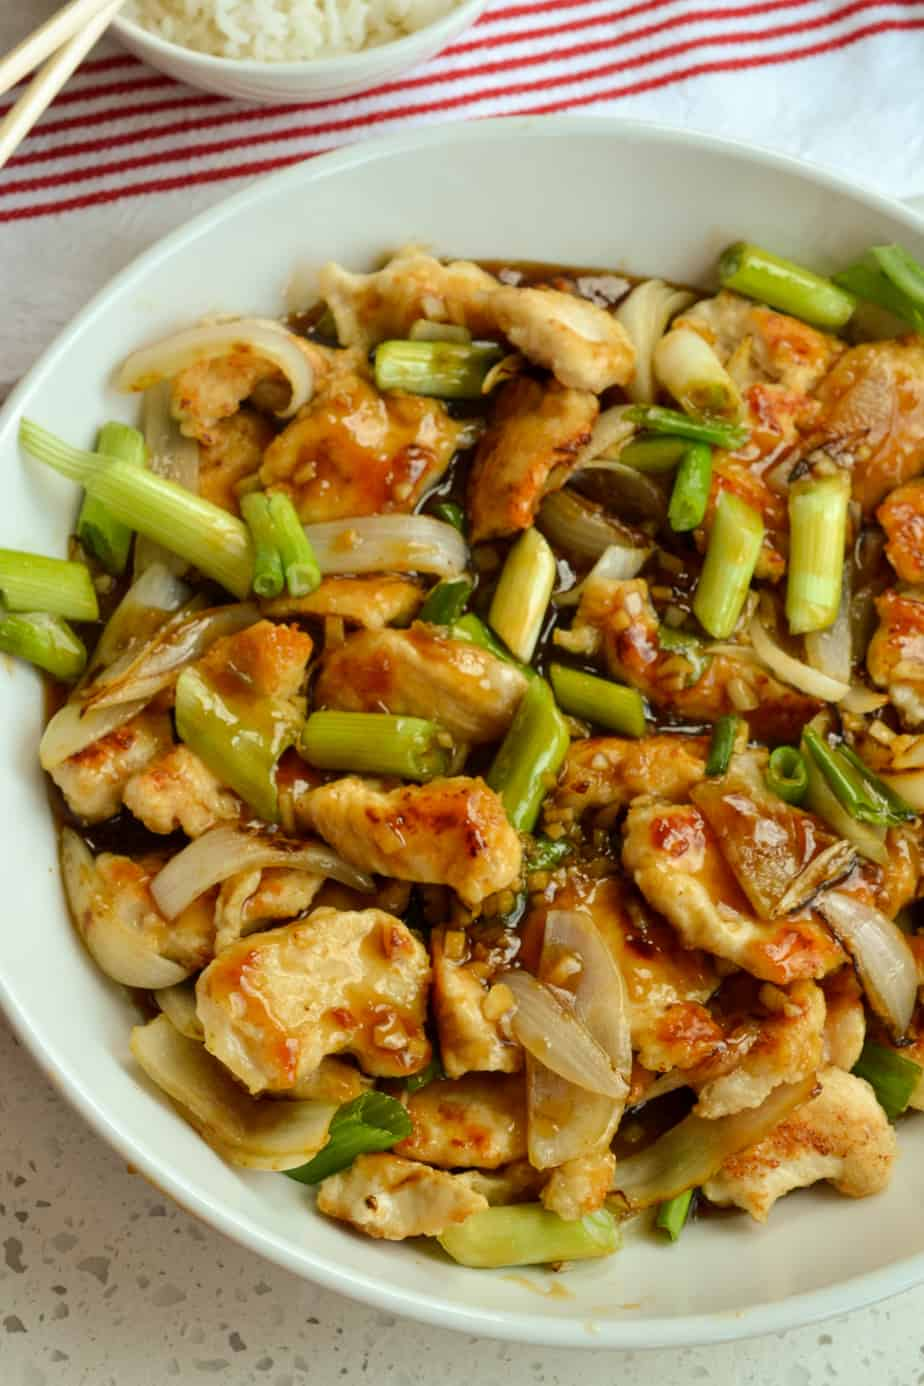 Bowl full of crispy chicken, sweet onions, scallions and mongolian sauce.